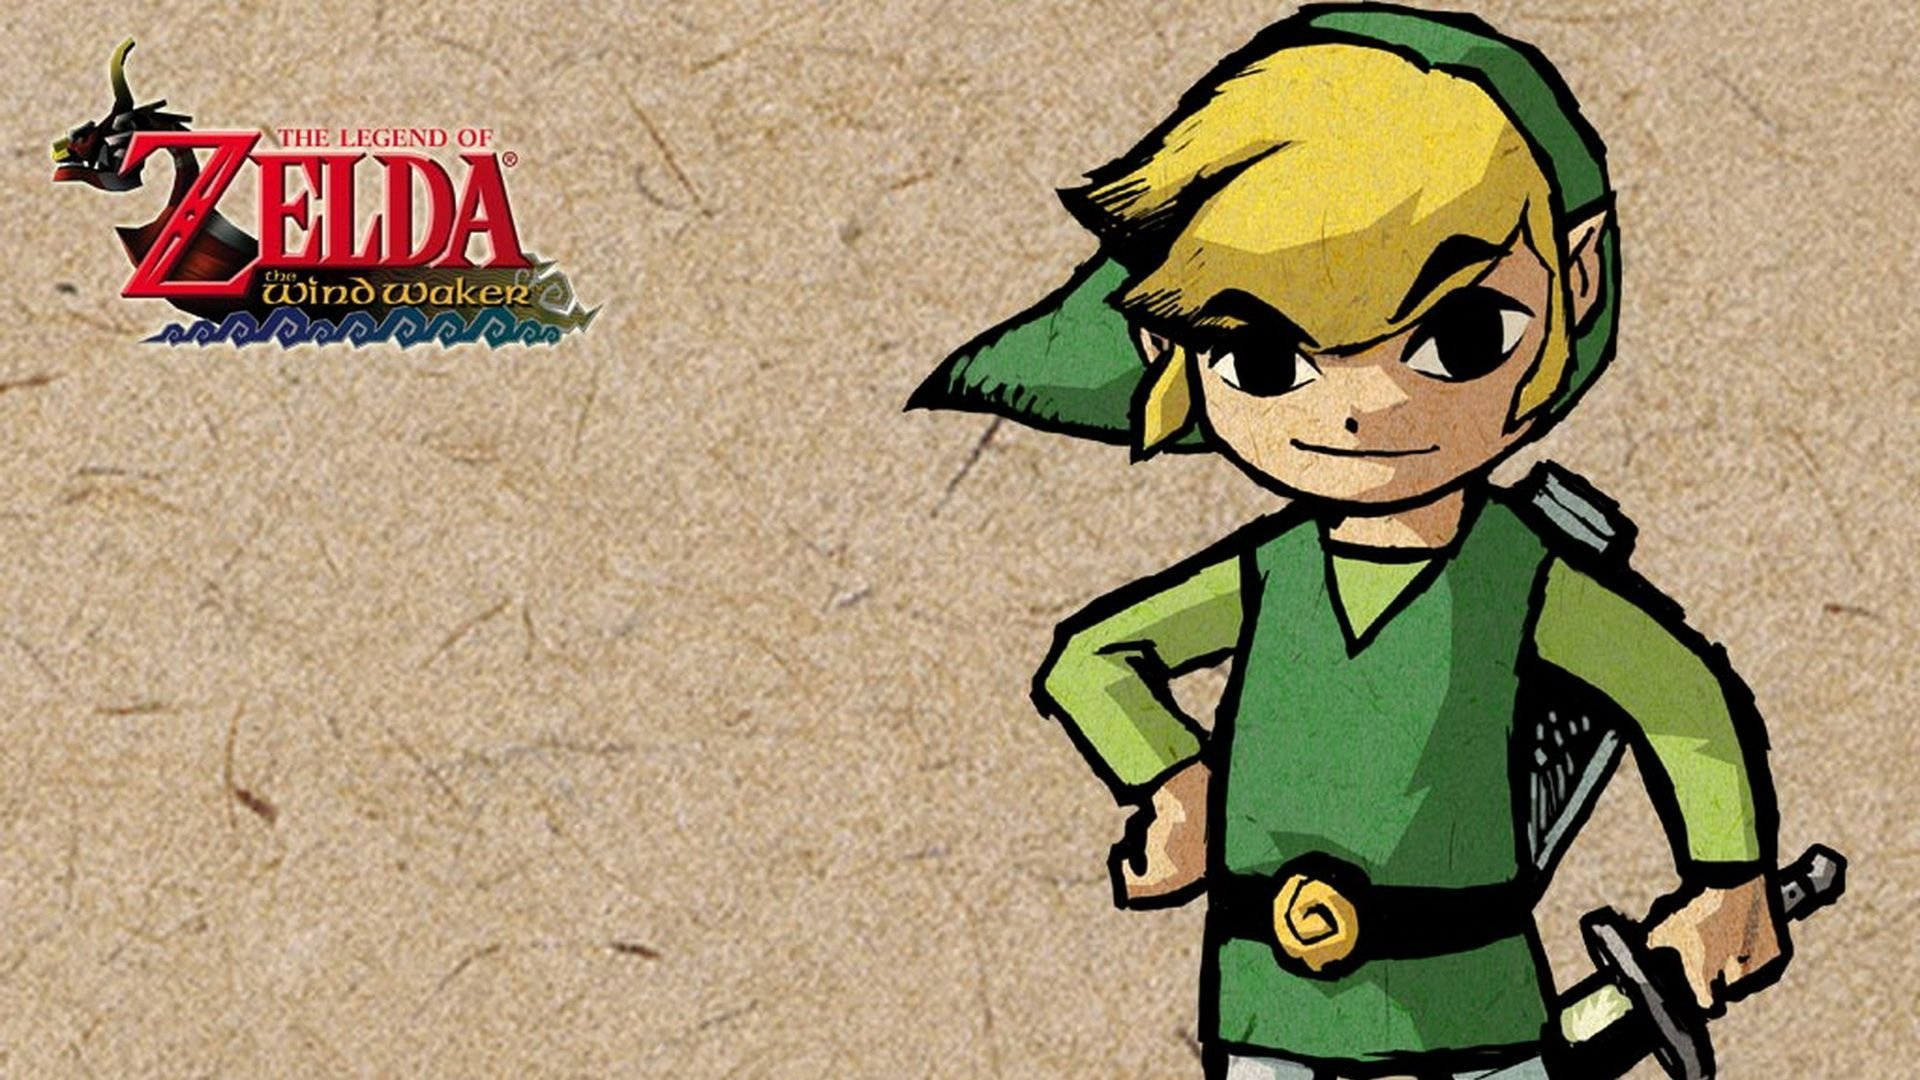 The Legend Of Zelda The Wind Waker Wallpapers 1920x1080 Full Hd